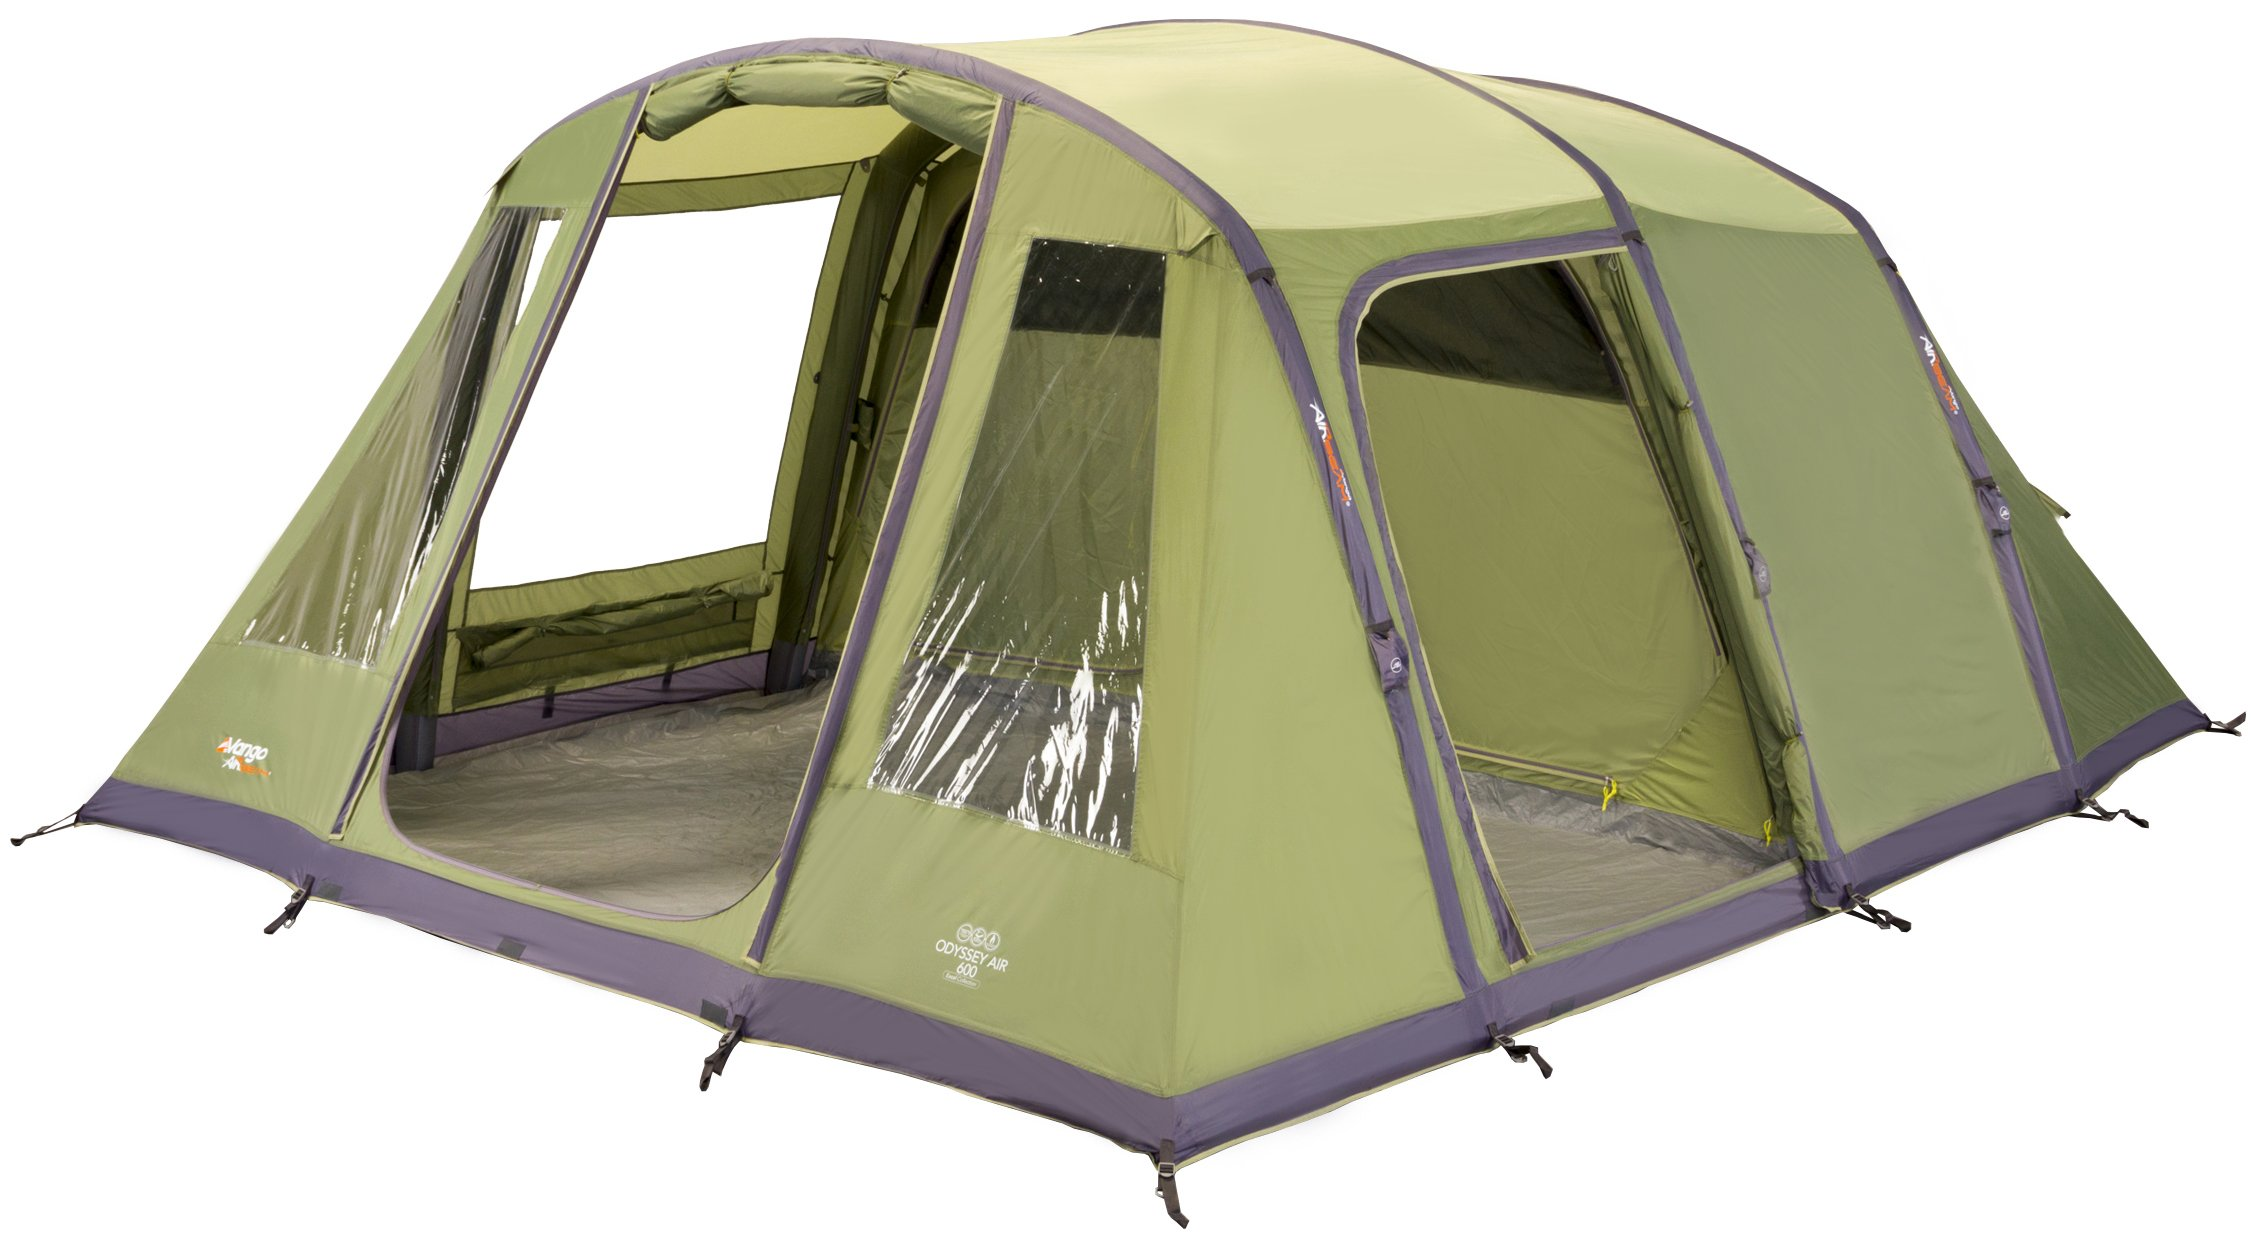 Airbeam Tent Amp Vango Solaris 600 6 Person Airbeam